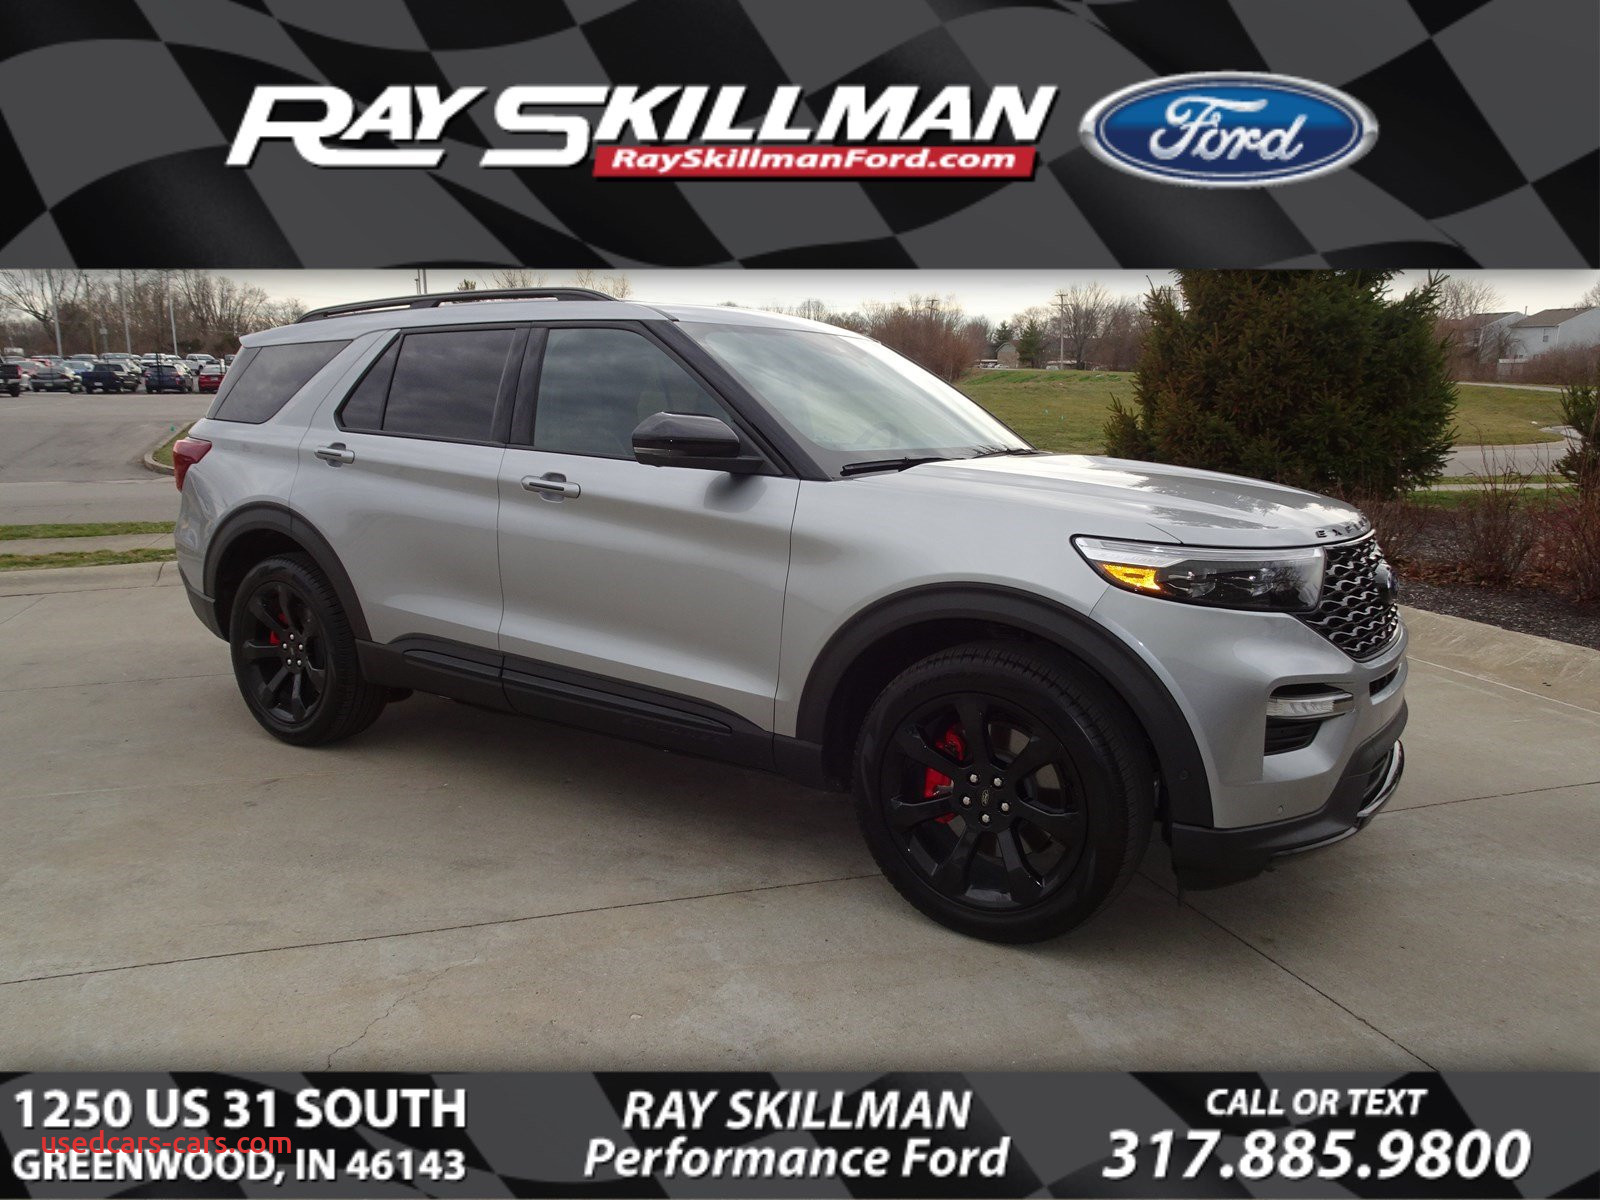 Ford 2020 New Suv Beautiful New 2020 ford Explorer St with Navigation & 4wd